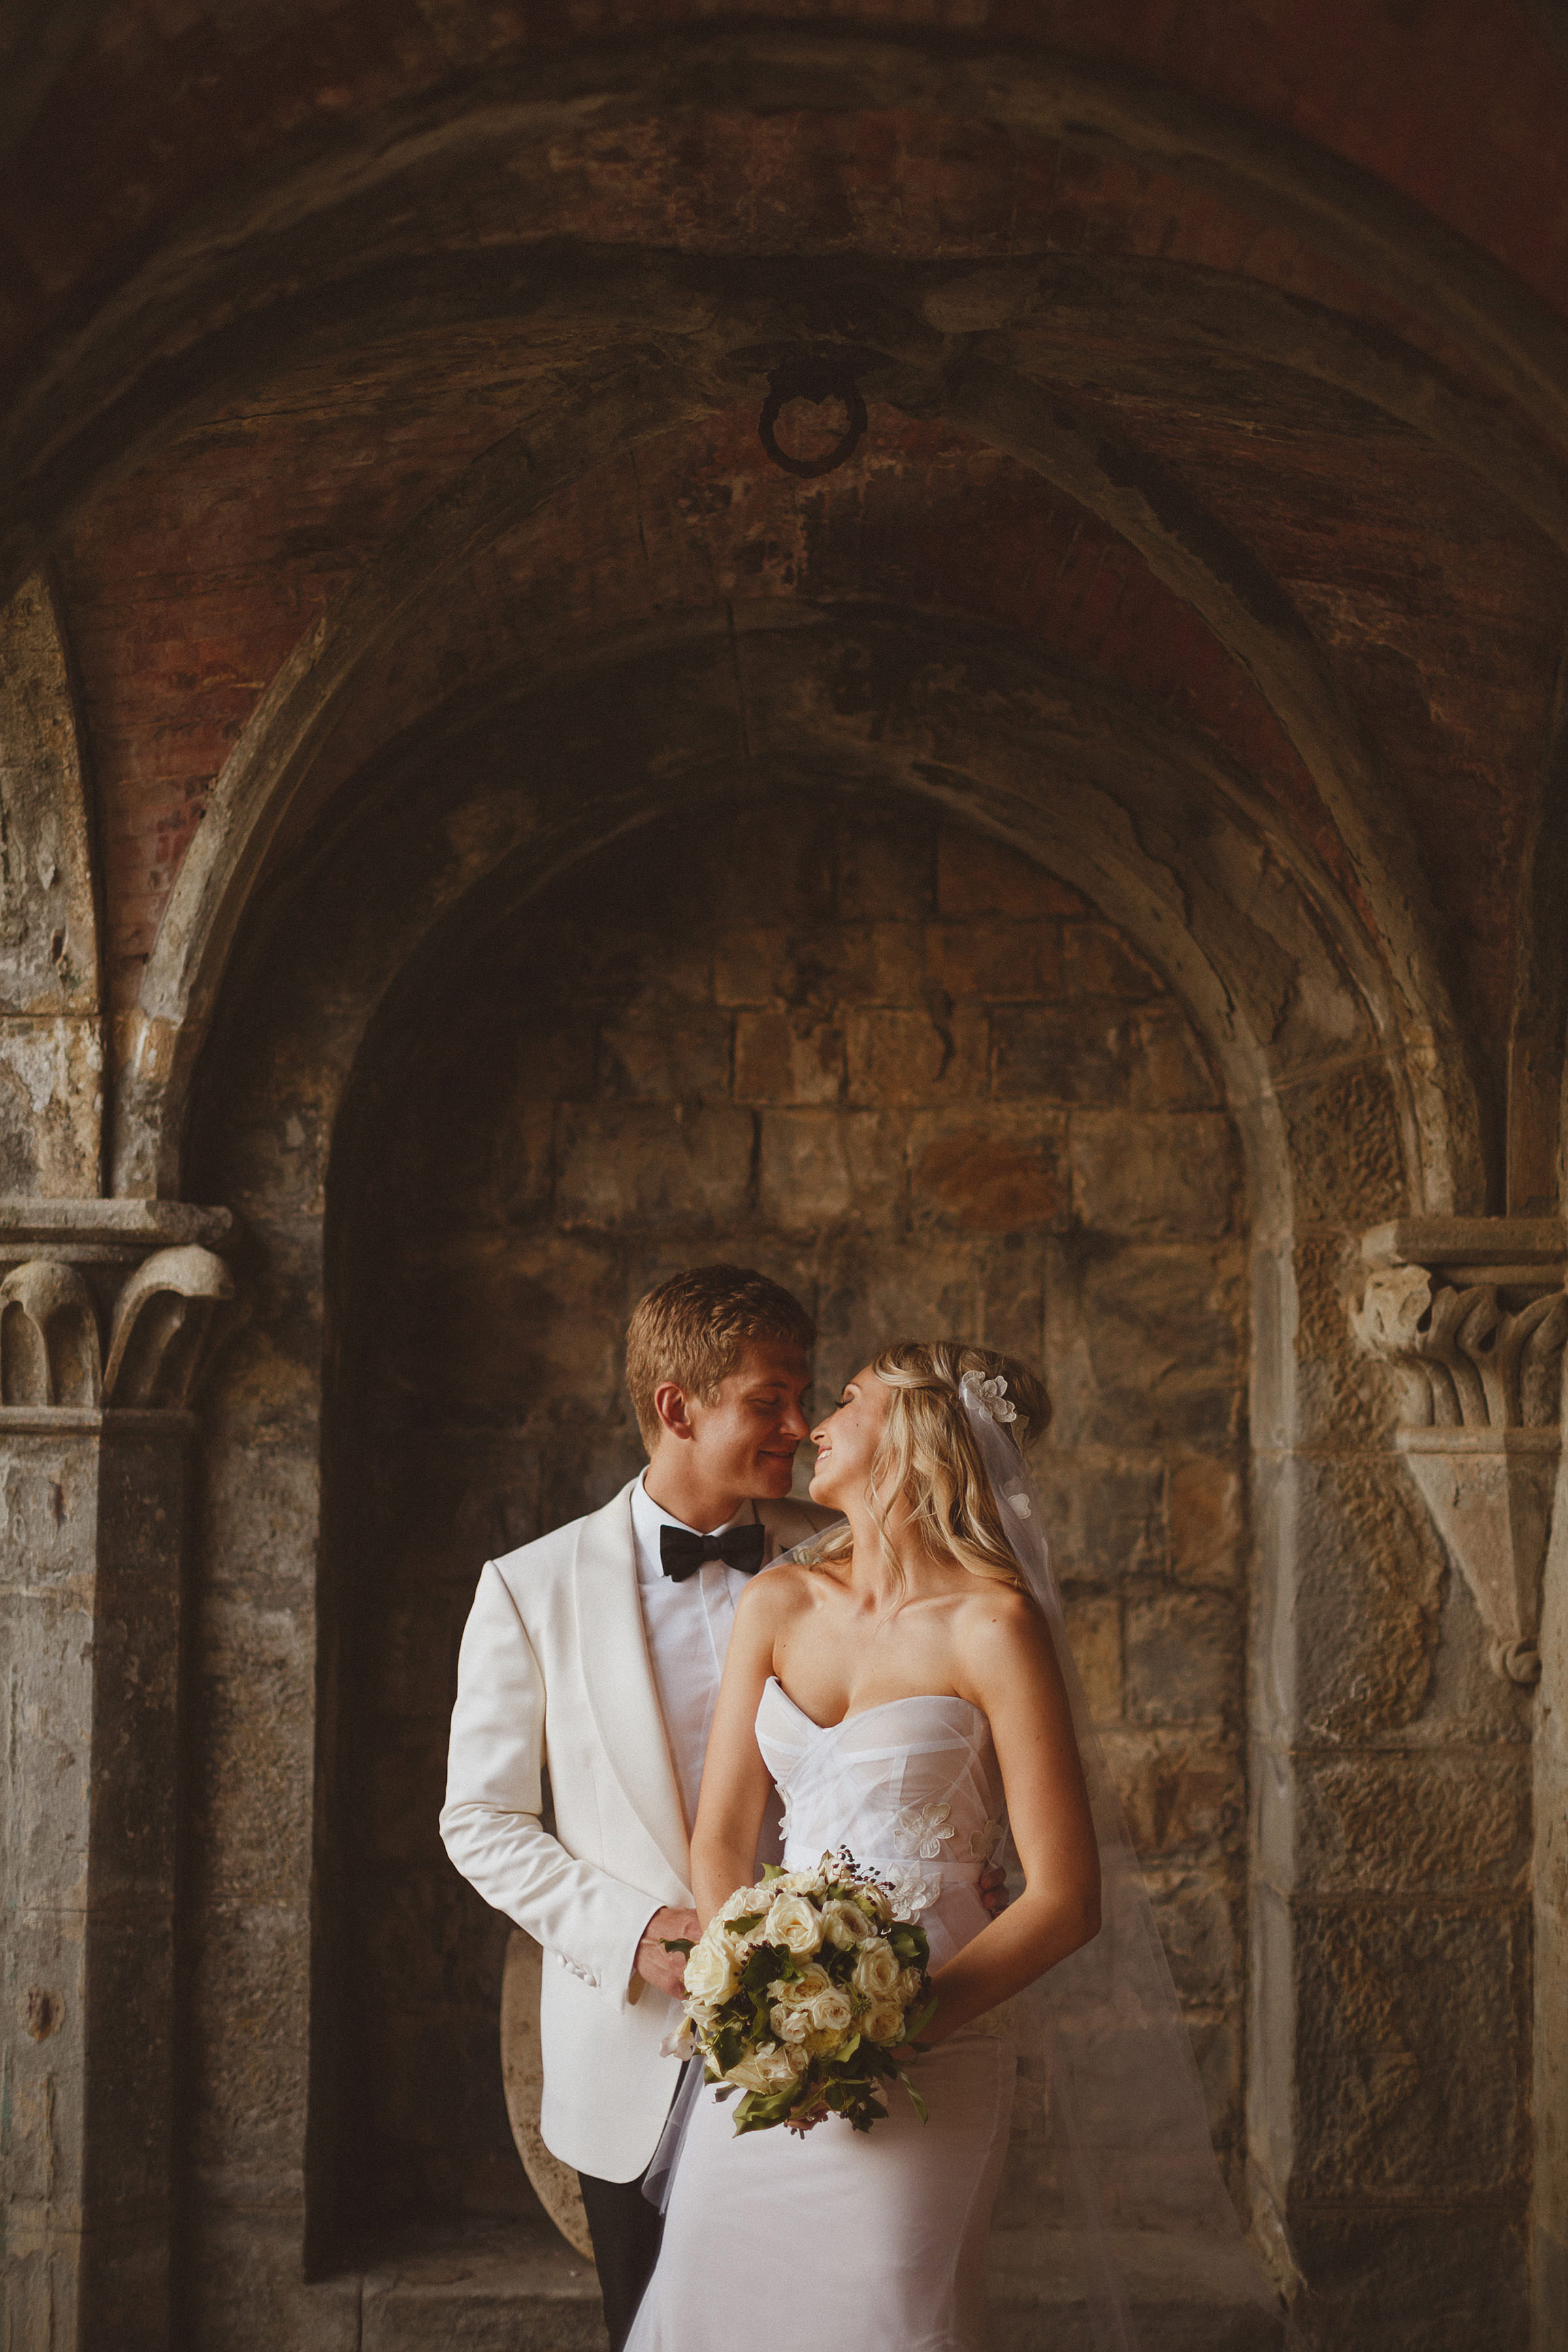 Couple against historic stone architecture - photo by Ed Peers Photography